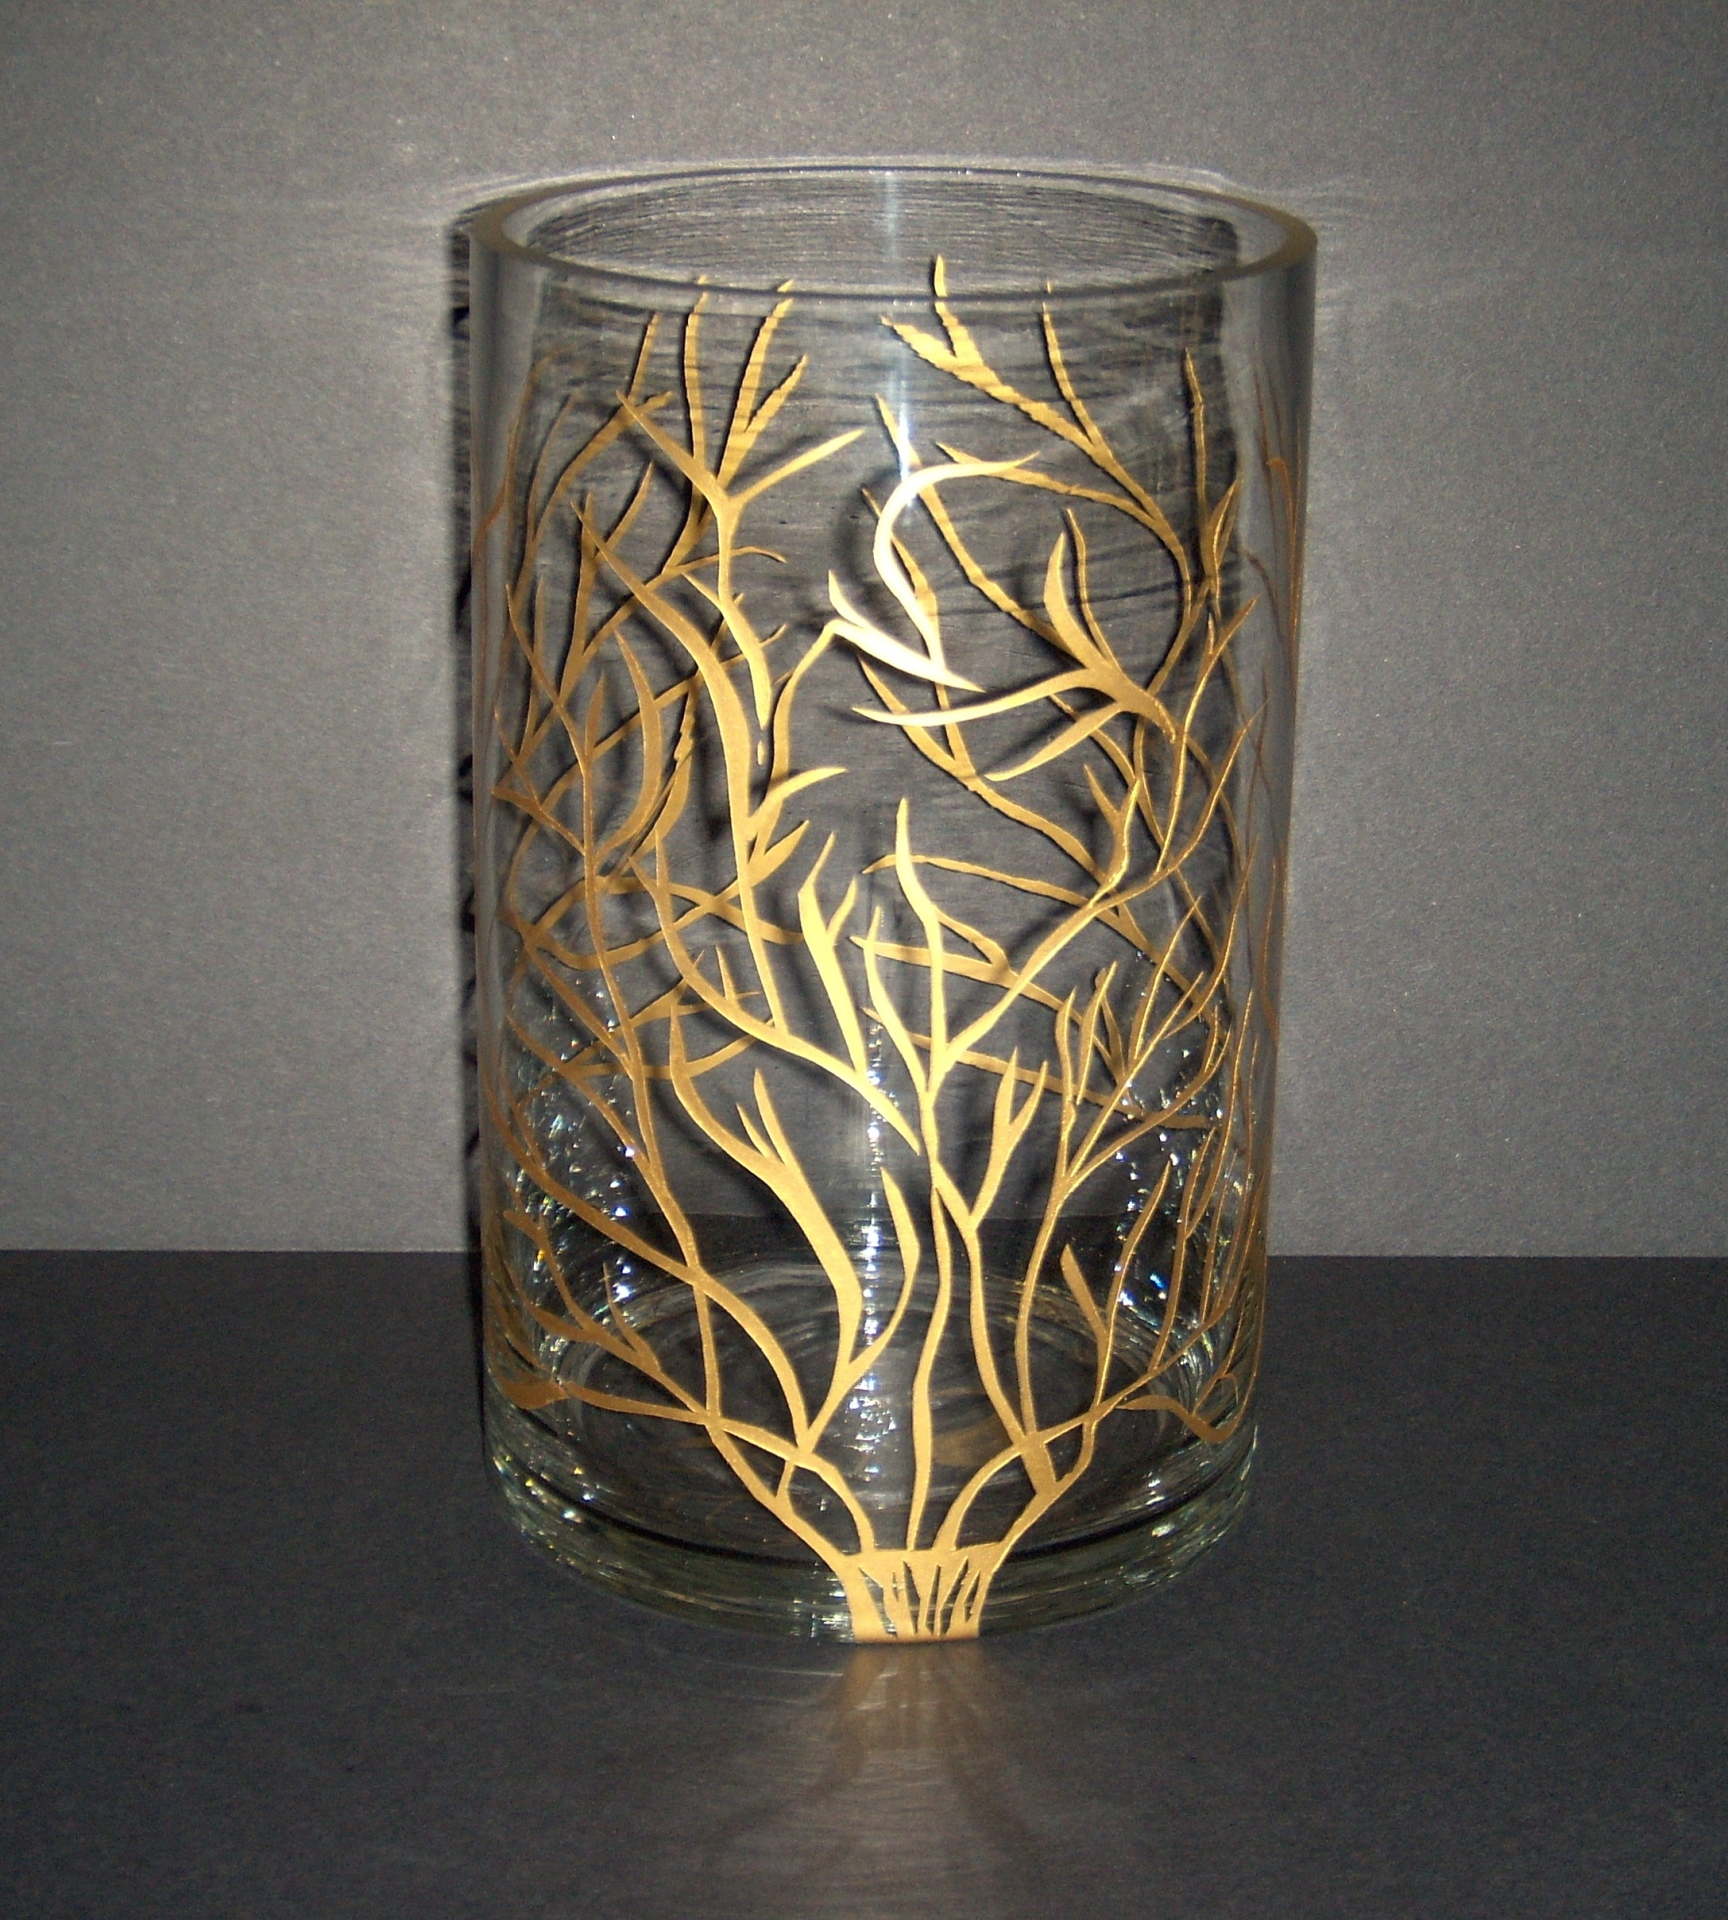 etched glass, gold-filled decorative vase